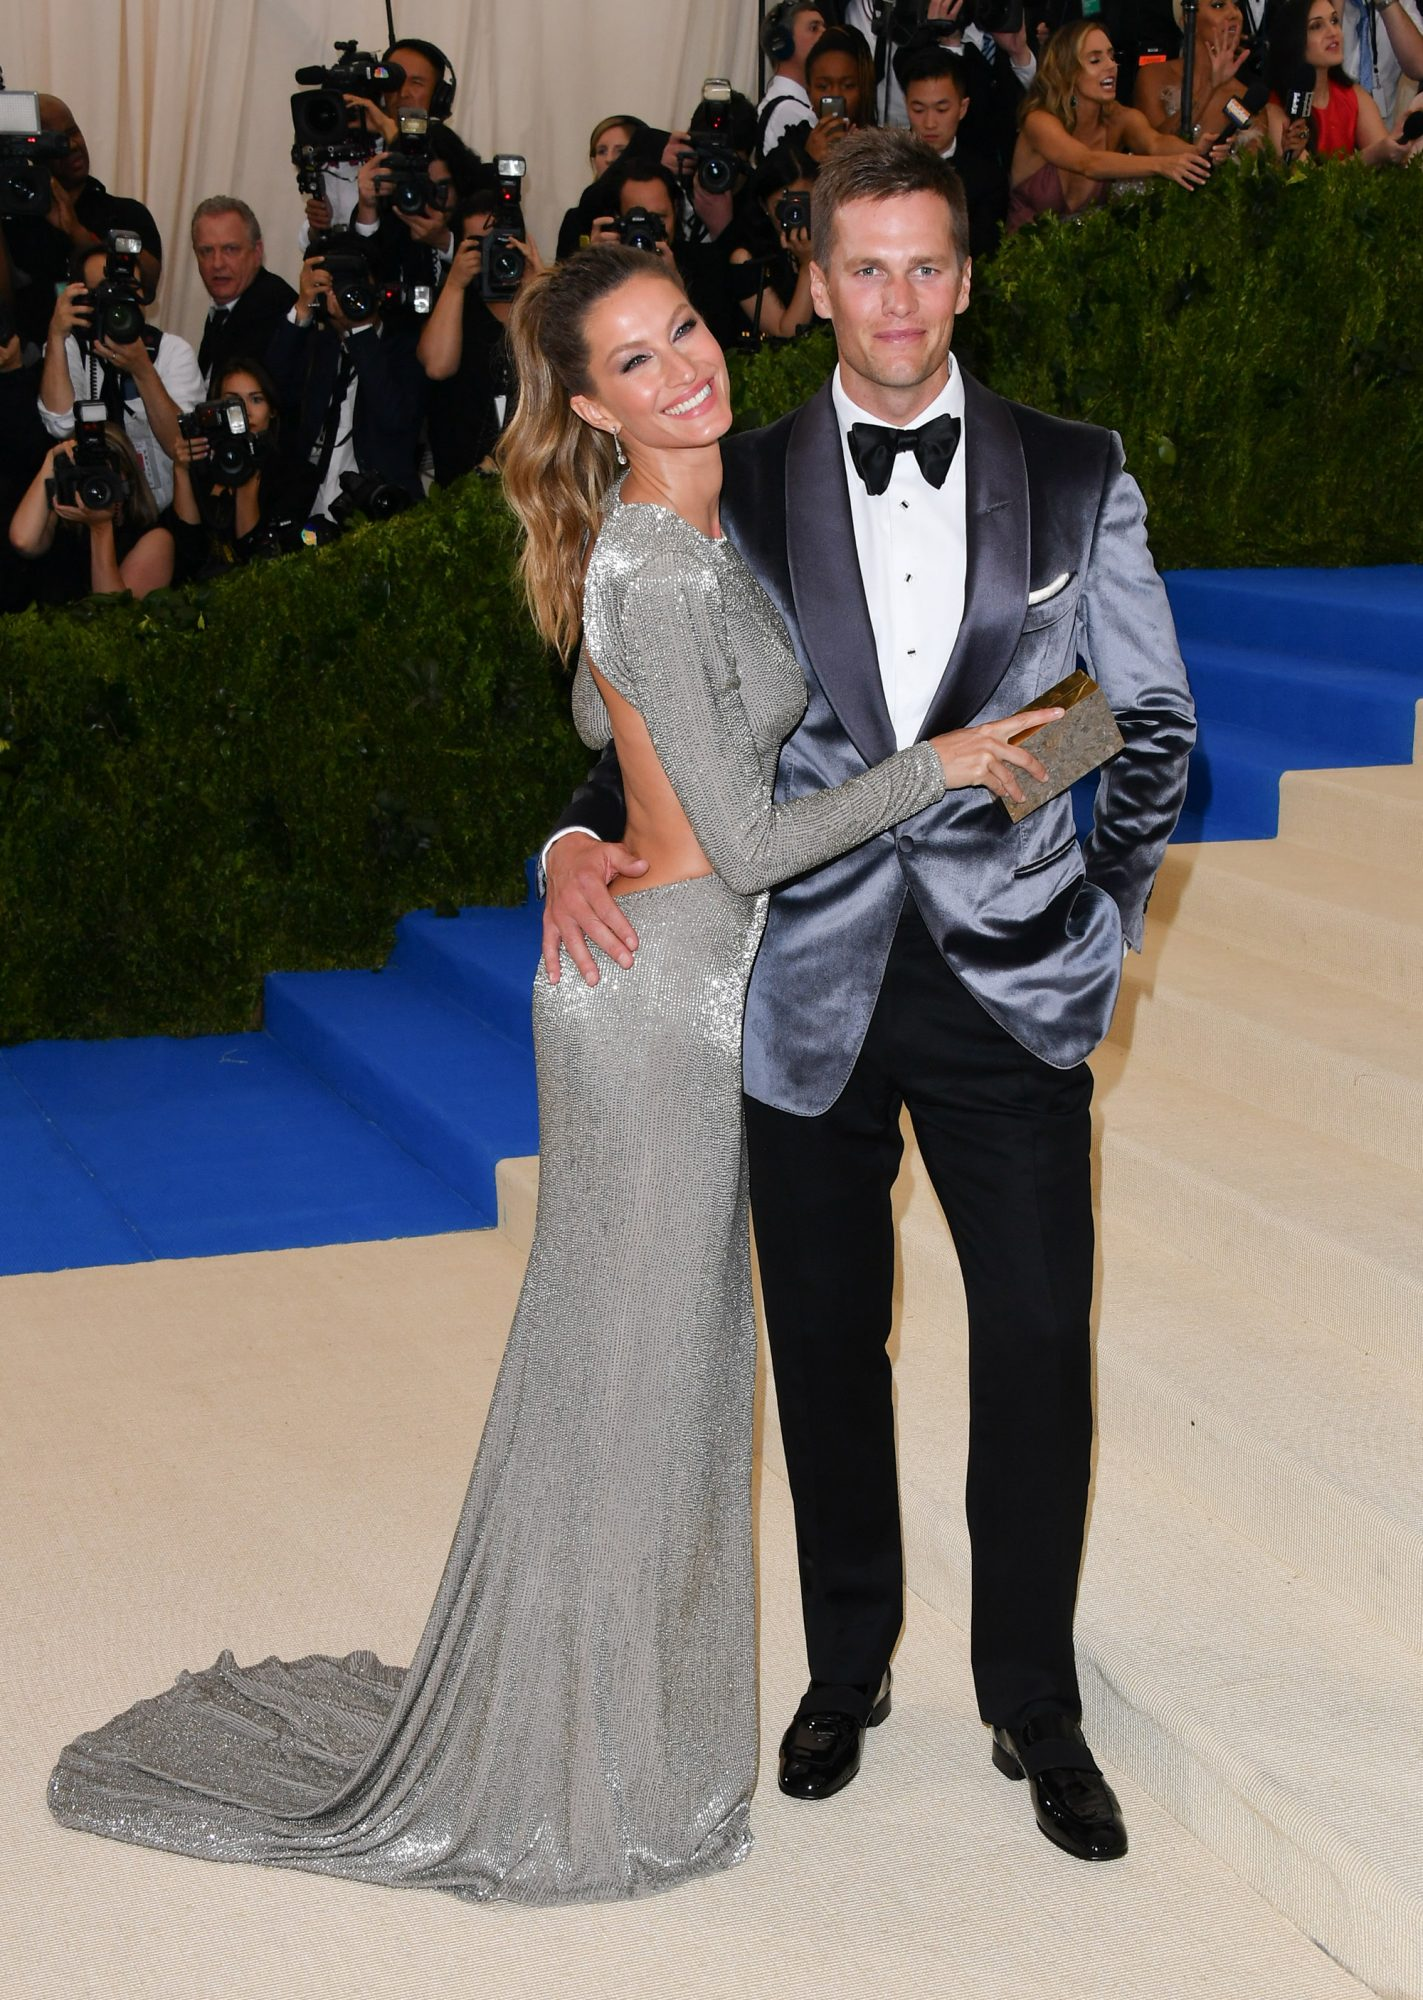 Gisele Bündchen Wants Tom Brady to Retire from the NFL, and She's Recruiting Friends to Convince Him